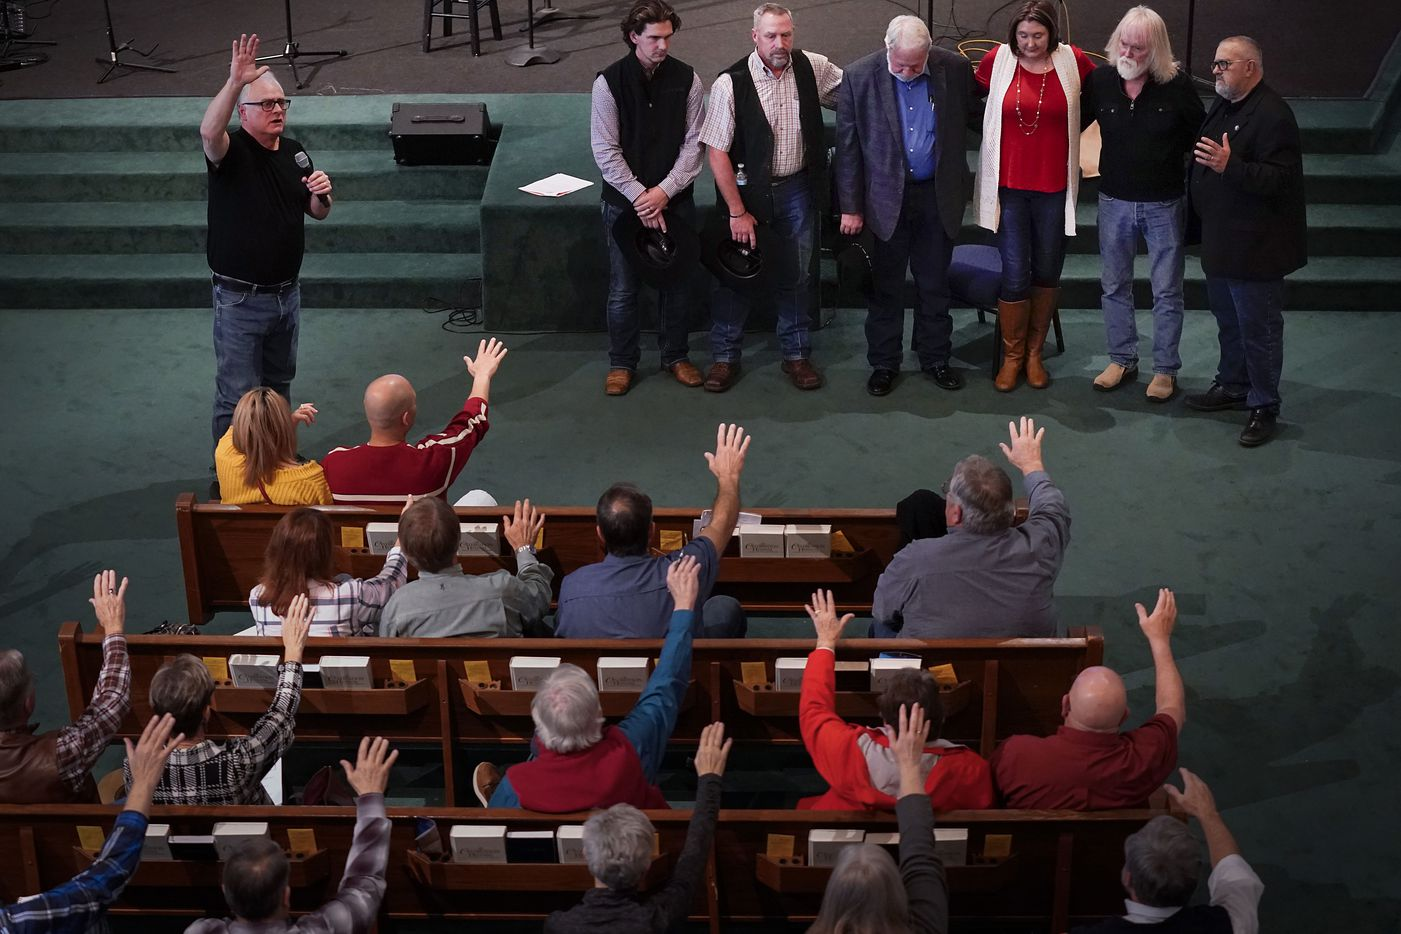 Jimmy Meeks (top left) leads a prayer for members of the West Freeway Church of Christ volunteer security team, including Jack Wilson (at center of group wearing jacket) who stopped a gunman at the church in White Settlement, during a church safety seminar at North Pointe Baptist Church on Sunday, Jan. 26, 2020, in Hurst, Texas.